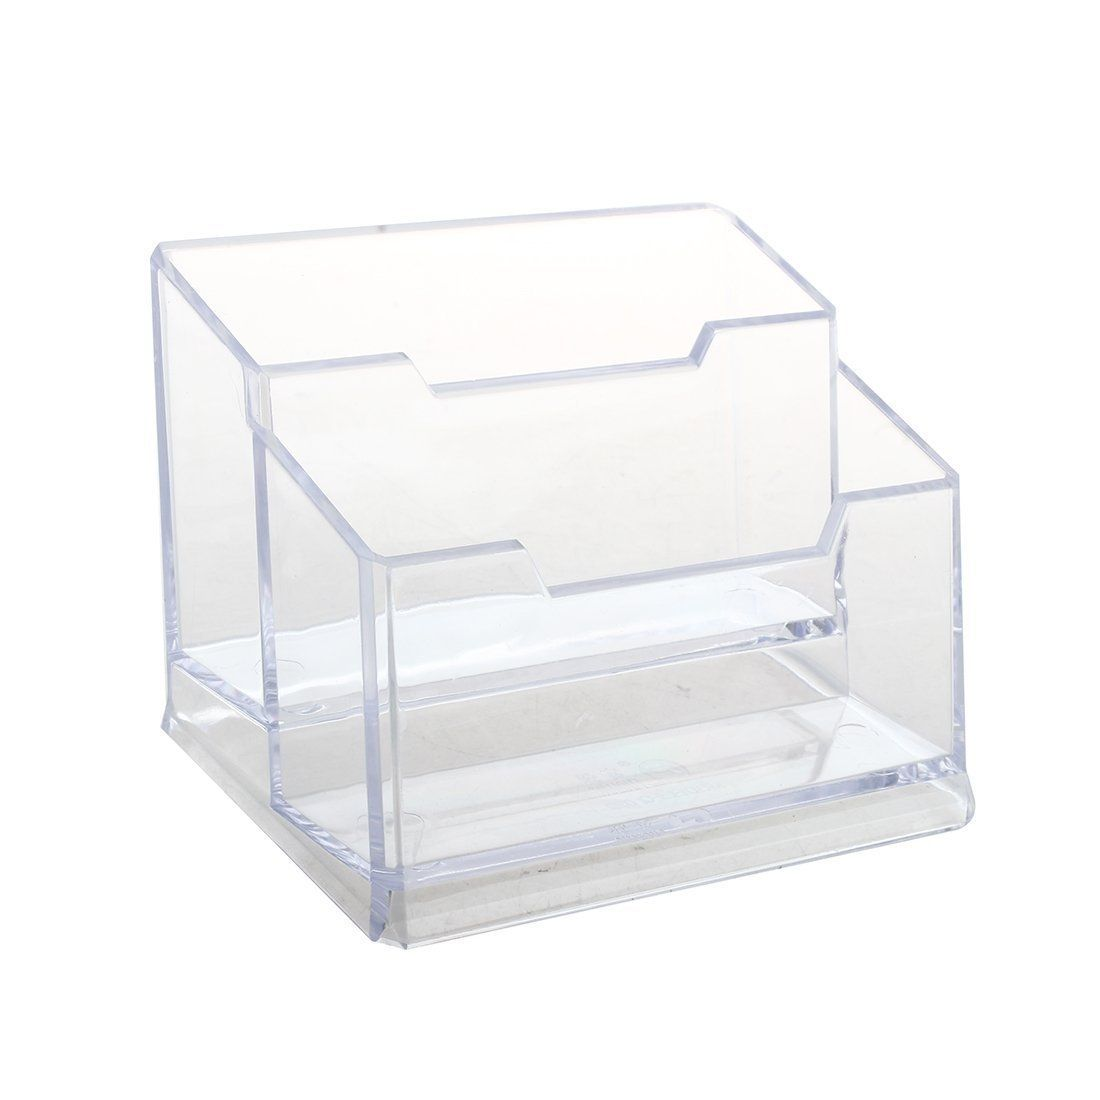 Clear Plastic Business Card Case Gallery Plastic Business Cards Business Card Holder Display Business Card Case